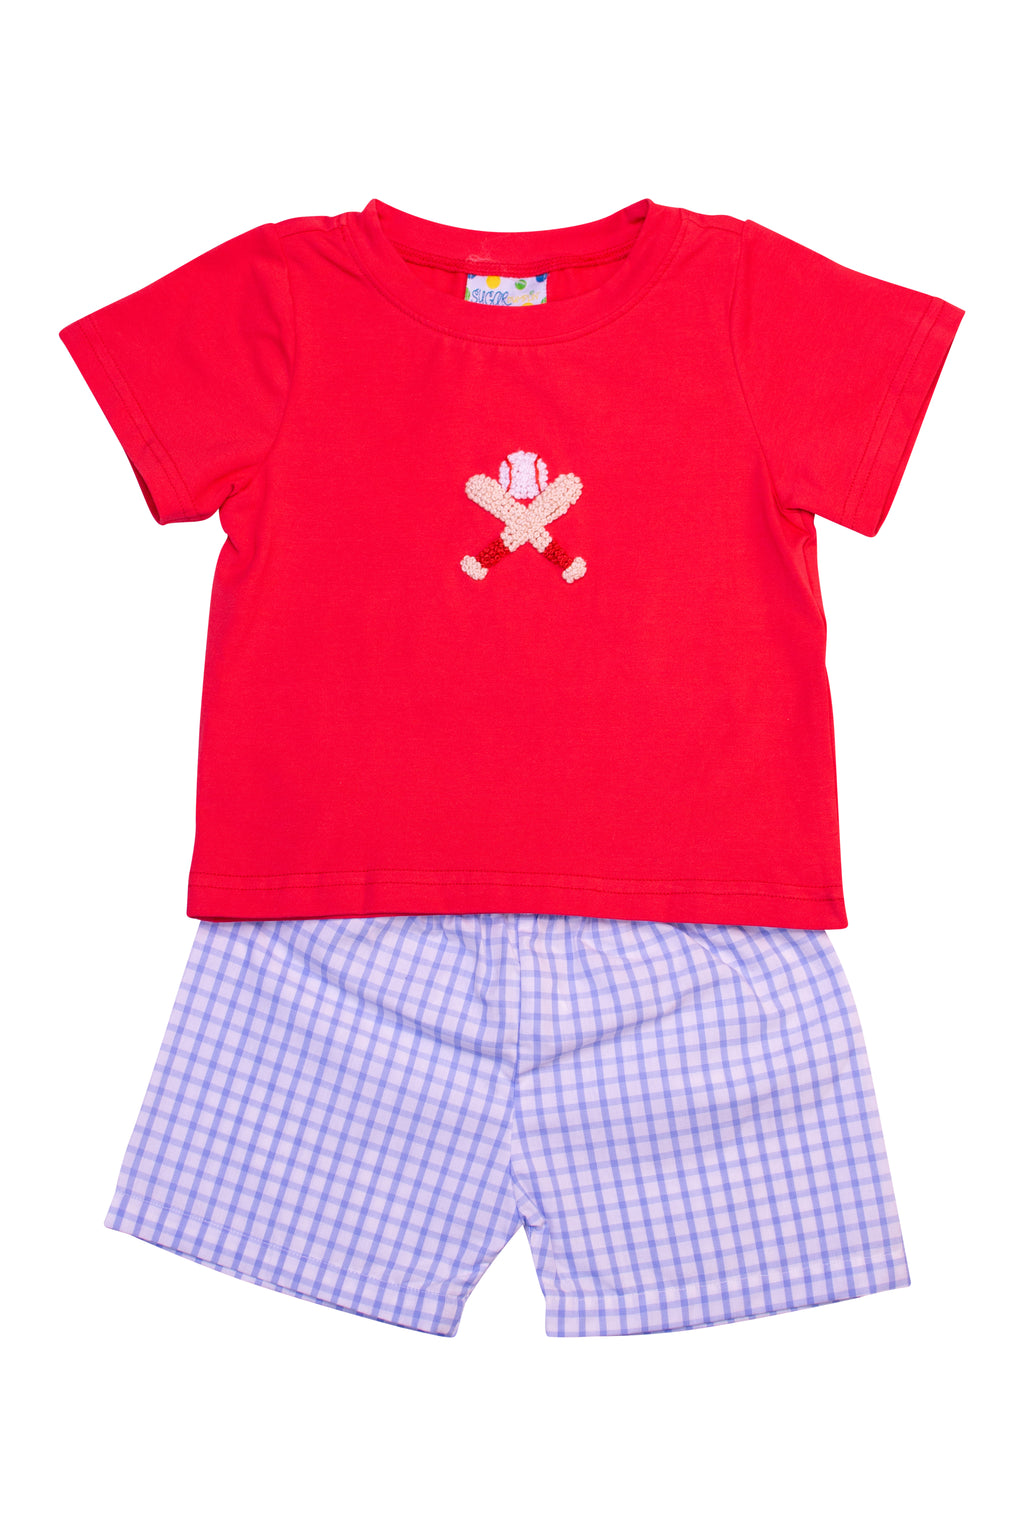 Boys French Knot Baseball Shorts Set